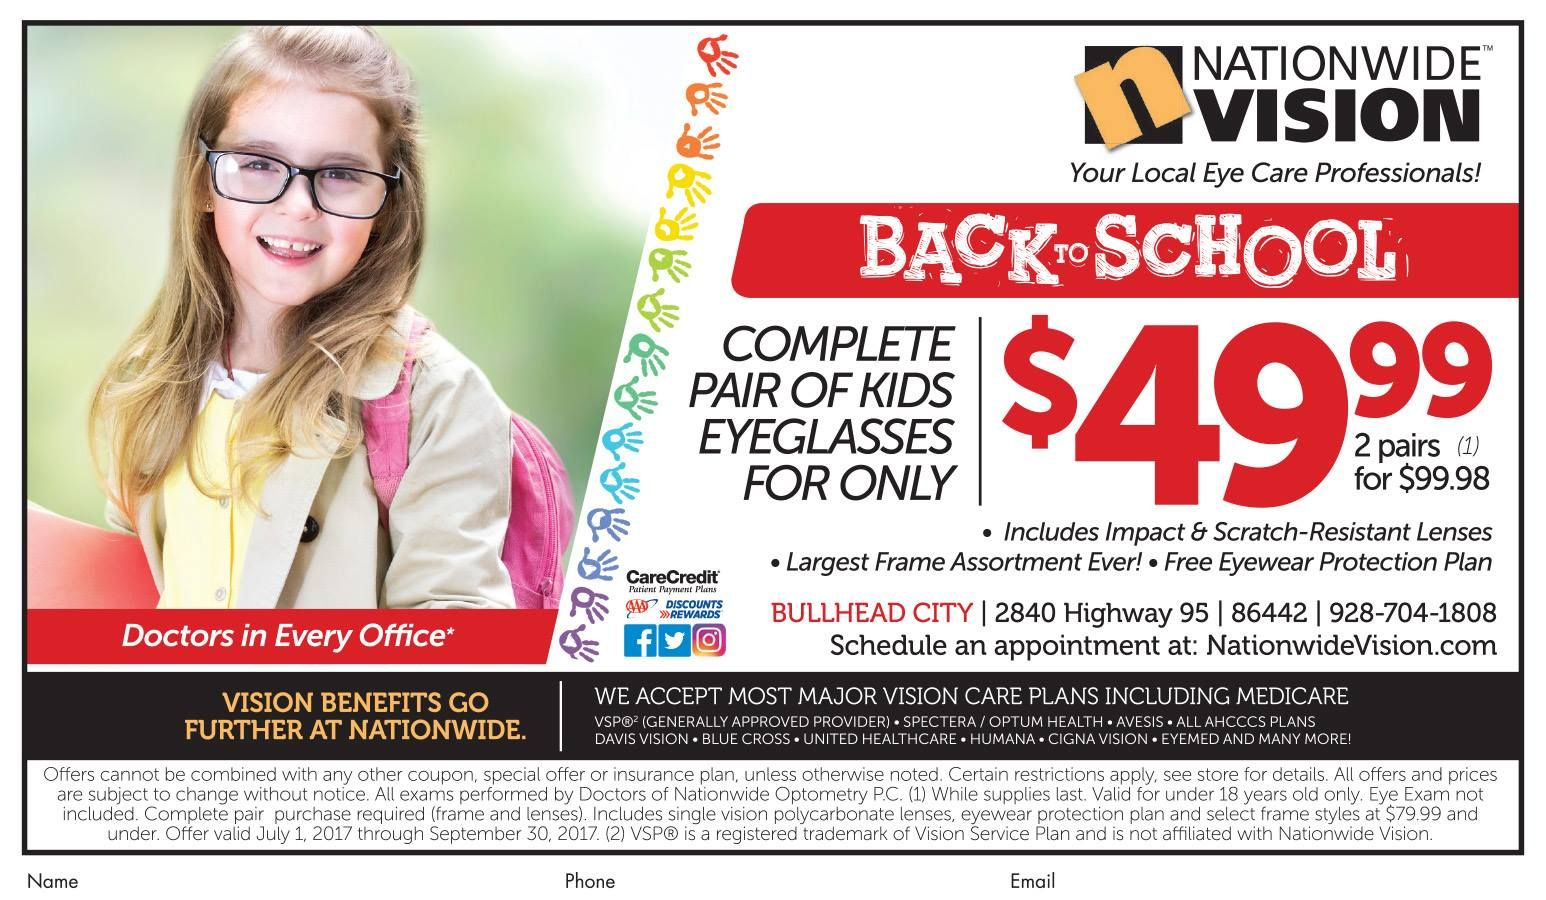 e6cc2ad1a86 Get a complete pair of kids eyeglasses 👓 for ONLY  49.99 at Nationwide  Vision at all 3 locations in Mohave County!  adspay  optical  health   newglasses ...